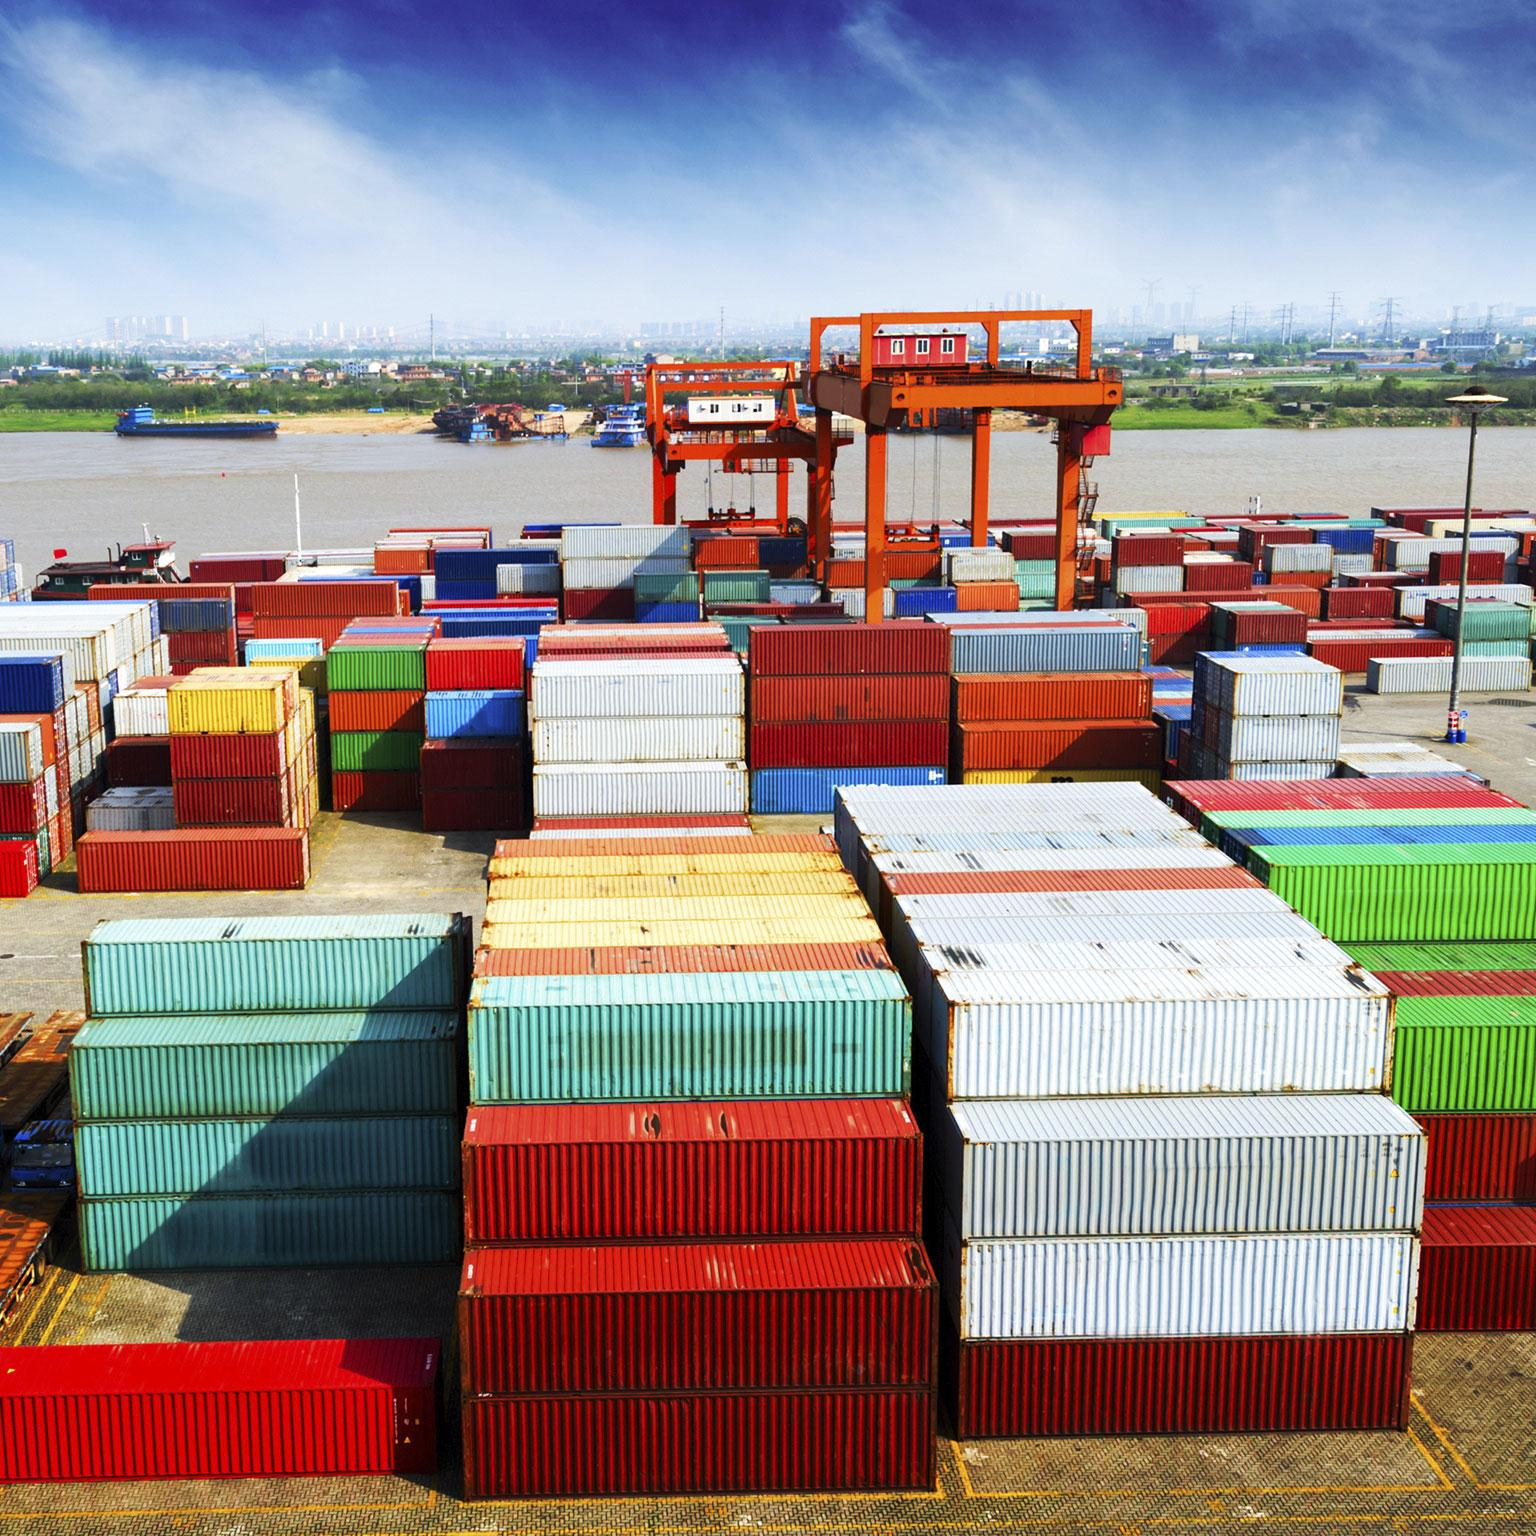 The hidden opportunity in container shipping | McKinsey